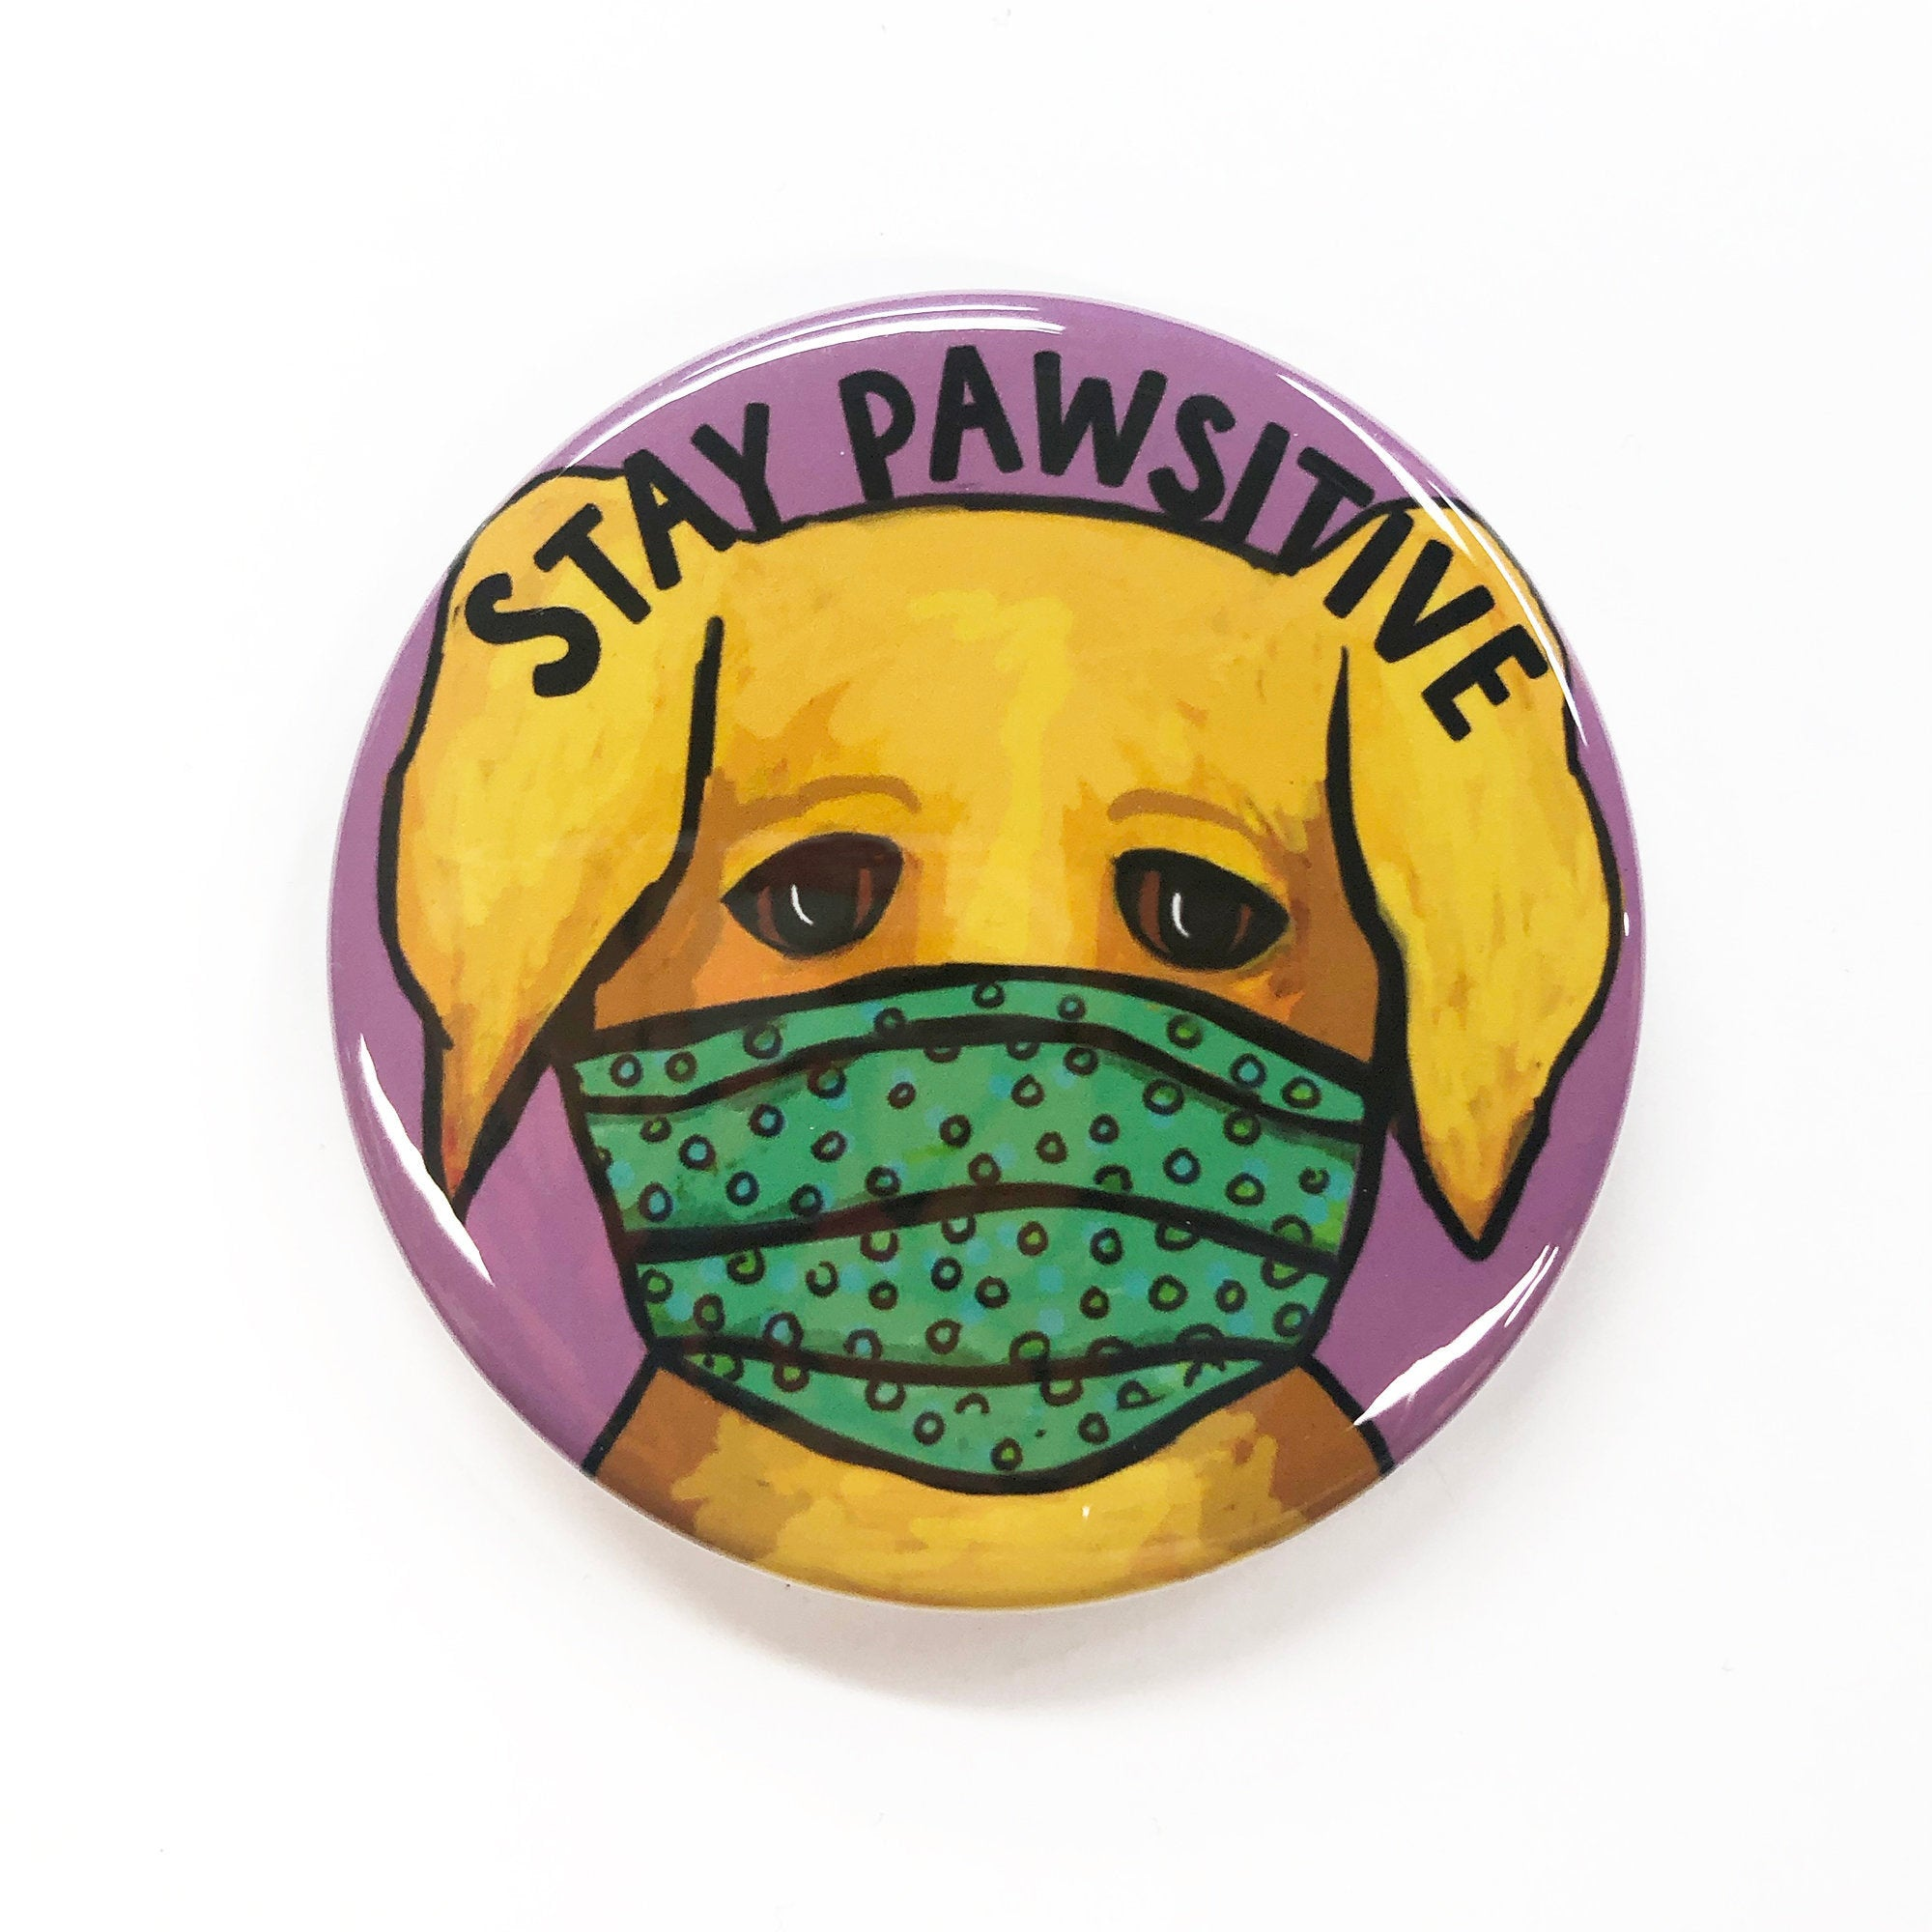 Stay Pawsitive Dog Pin, Magnet, or Pocket Mirror